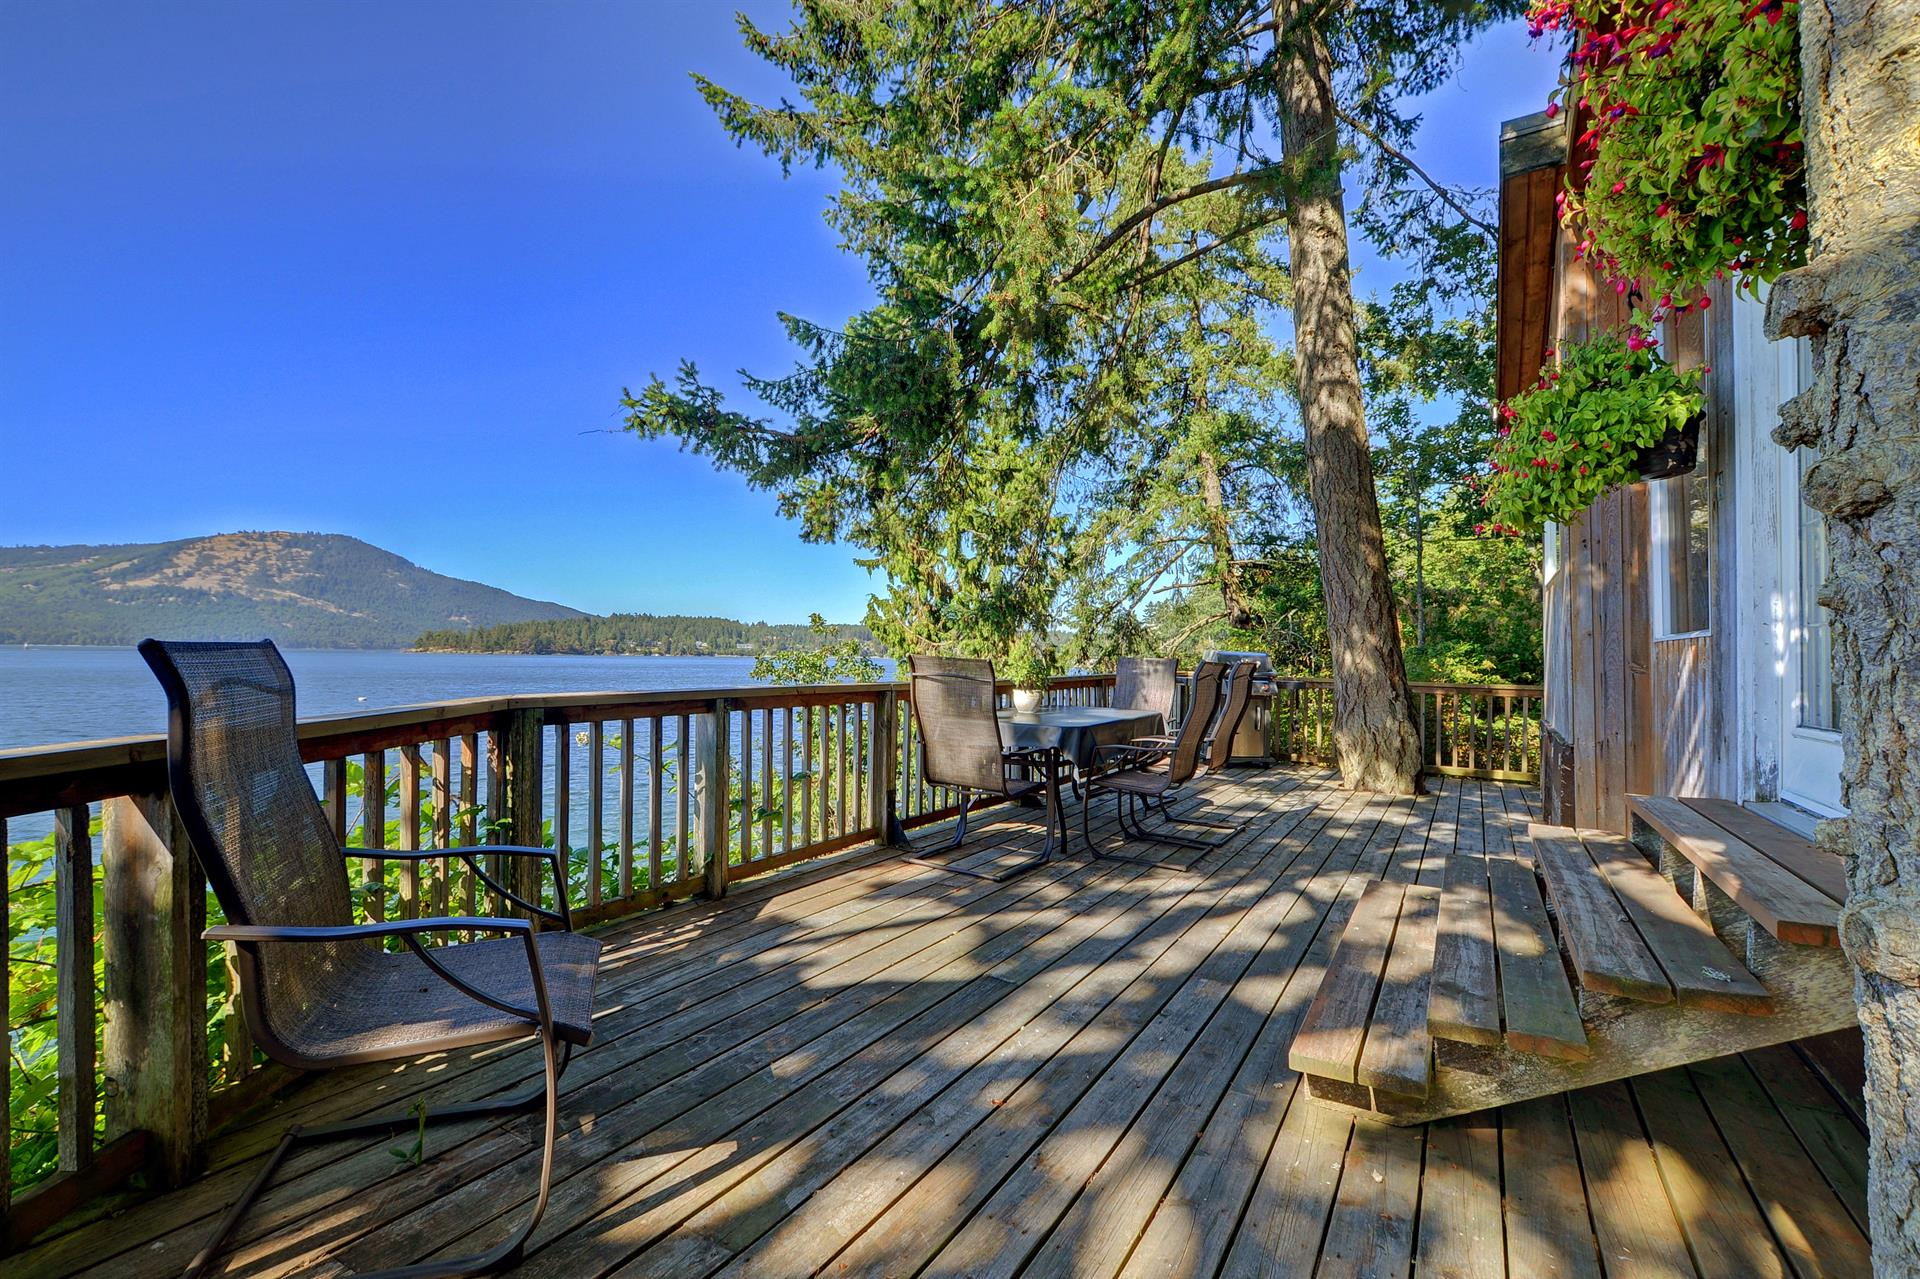 Additional photo for property listing at 273 Coal Point Ln Victoria, British Columbia,Canada